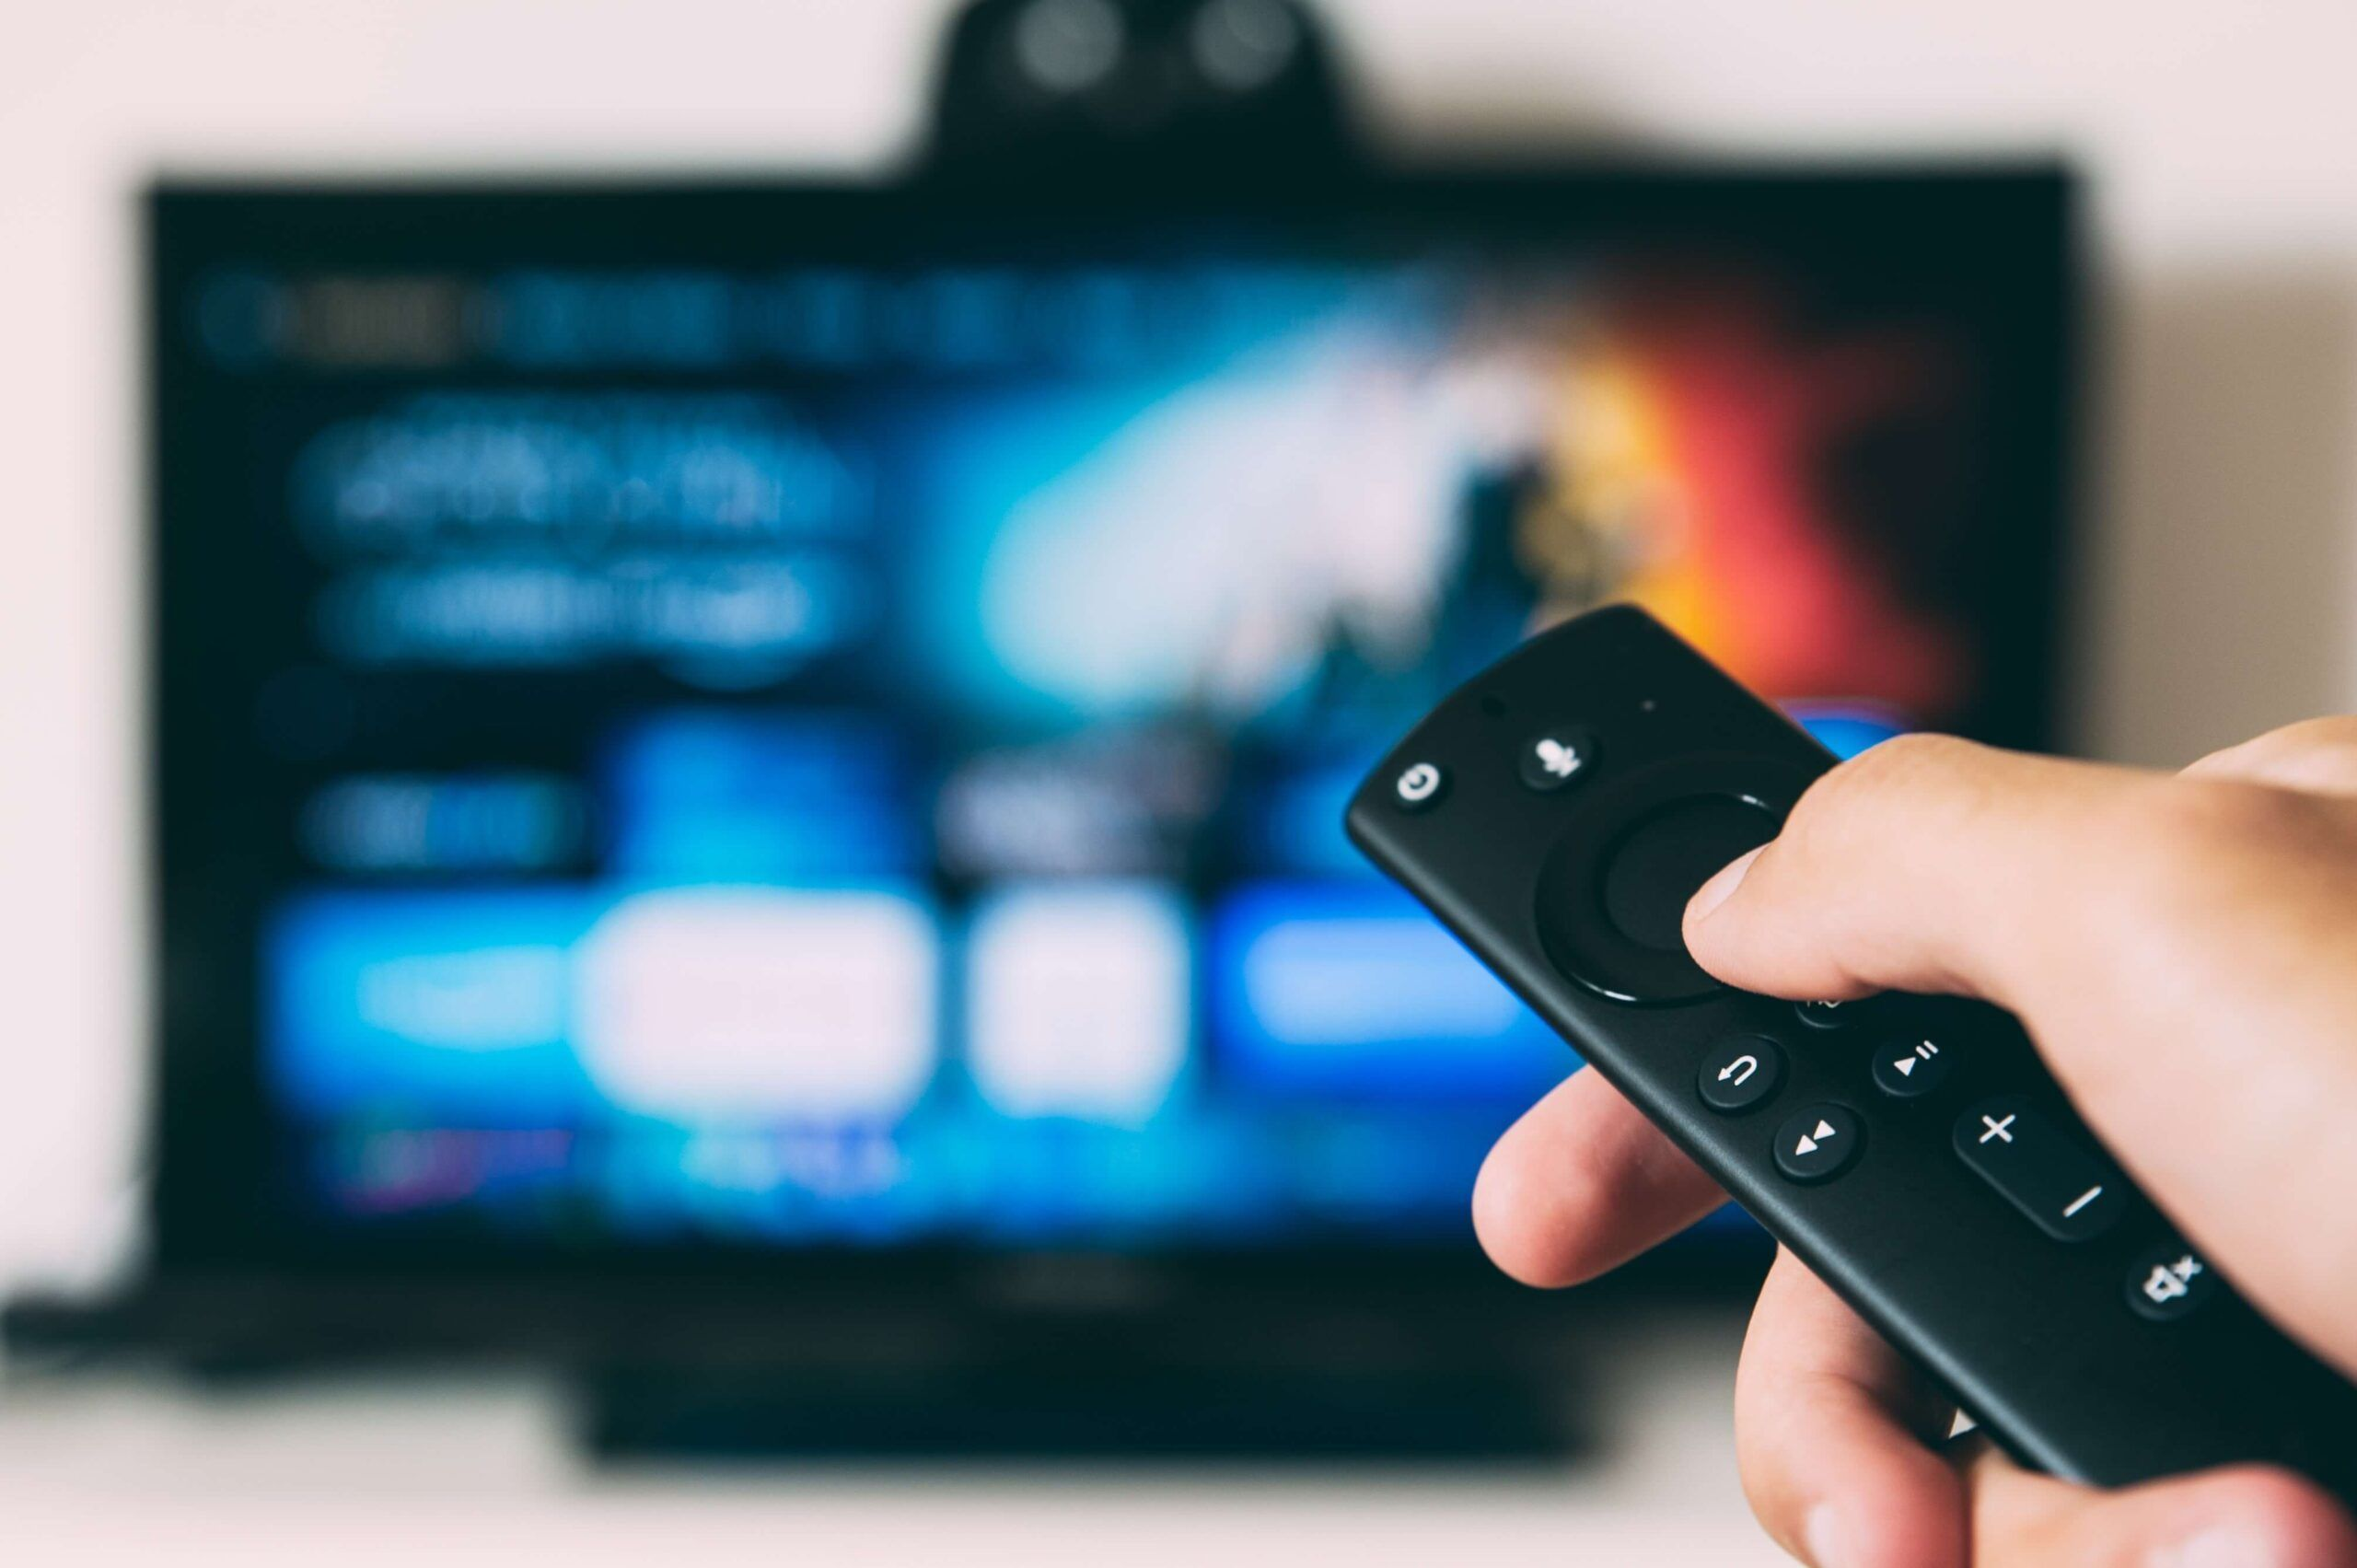 Watch Tv Without Cable Or Satellite 18 Ways To Save In 2020 Smart Tv Amazon Fire Tv Watch Tv Without Cable